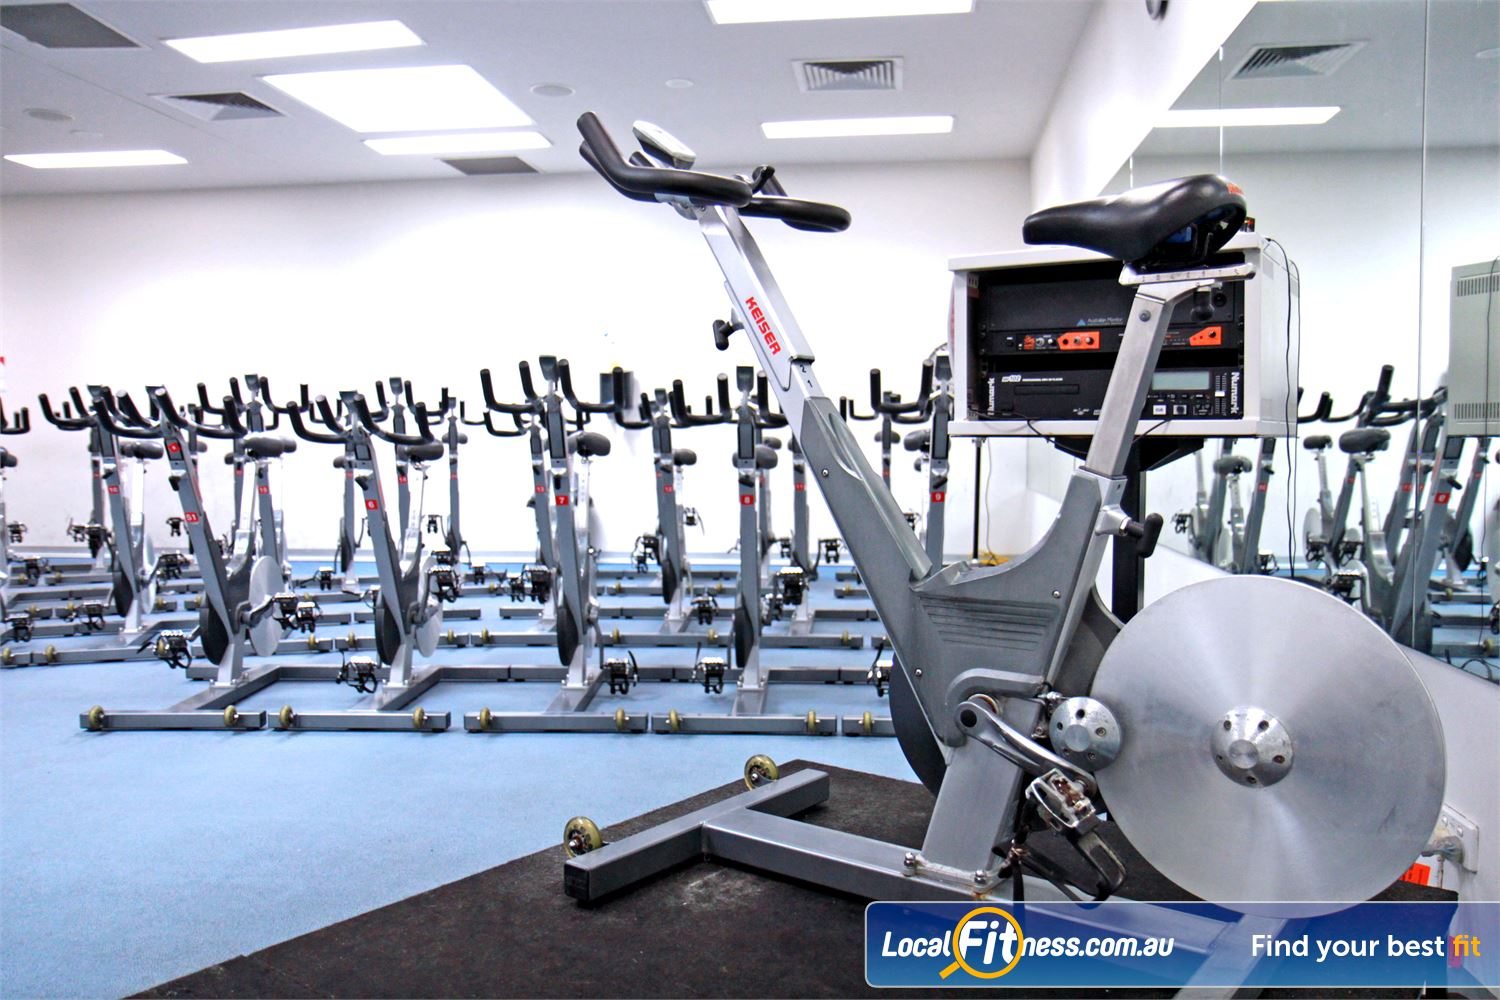 Ascot Vale Leisure Centre Near Moonee Ponds State of the art Keiser cycle bikes with individual digital screen.